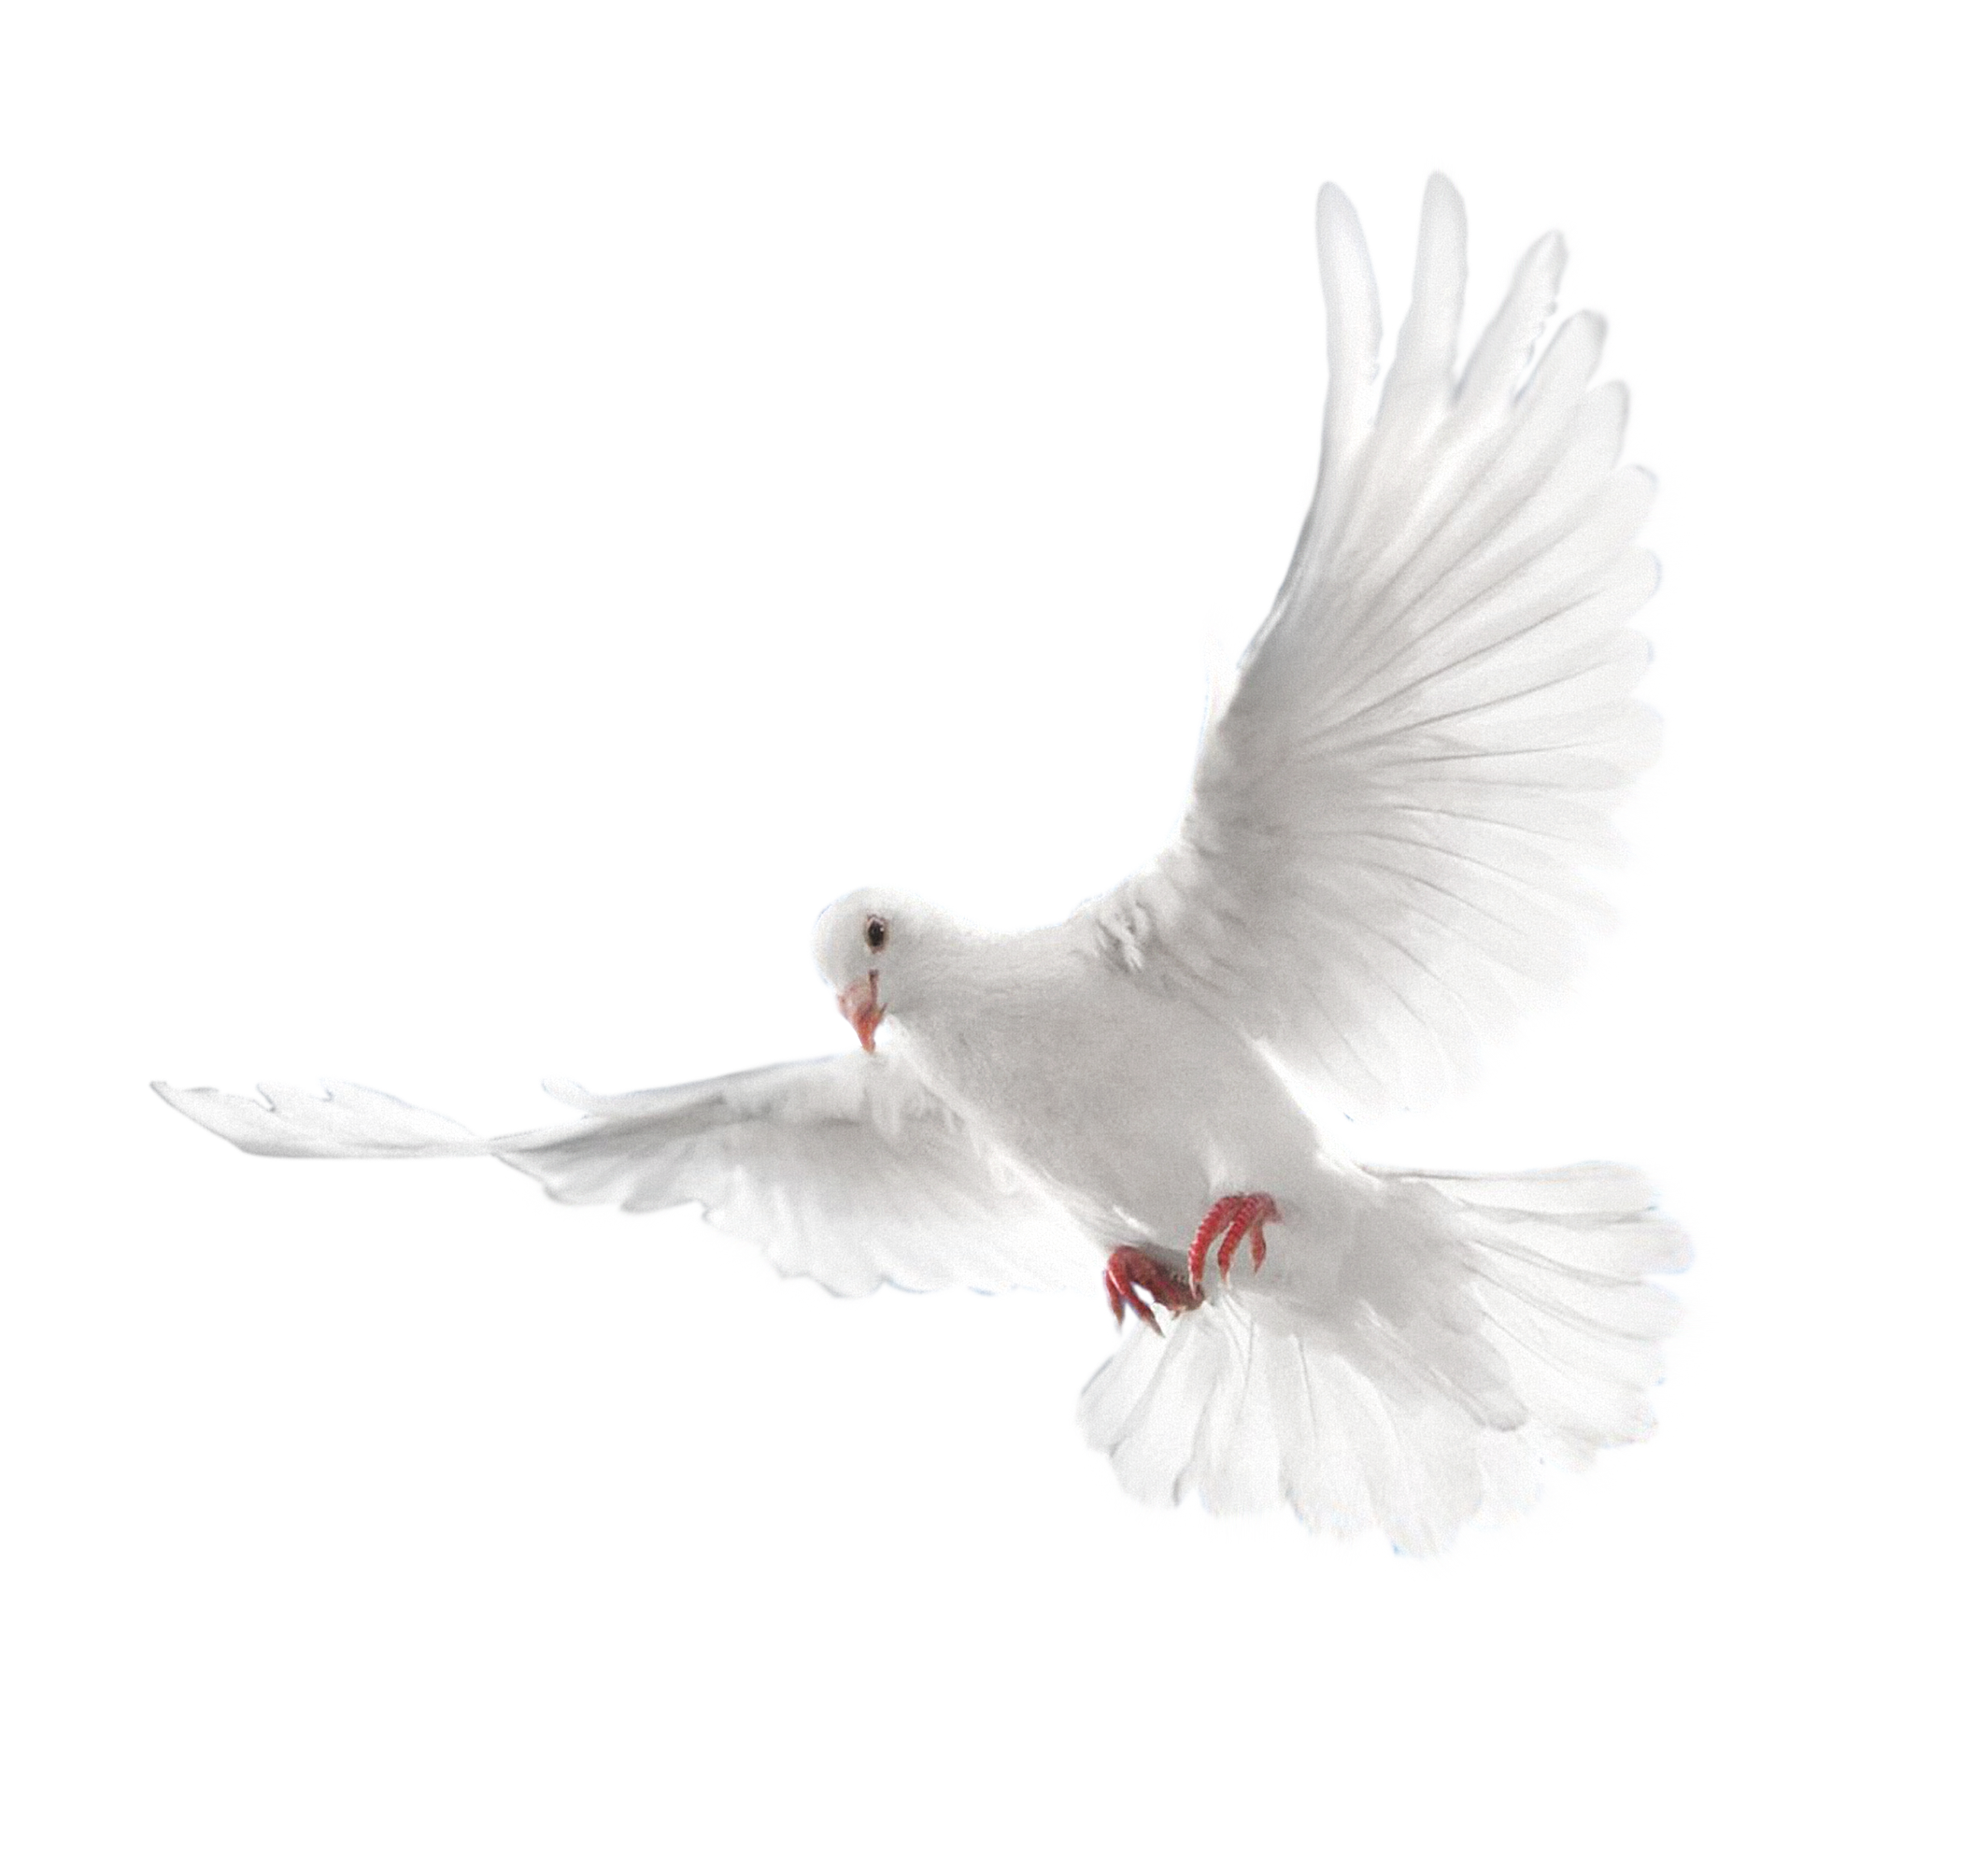 White Flying Pigeon Png Image Flying Pigeon Pigeon Png Images